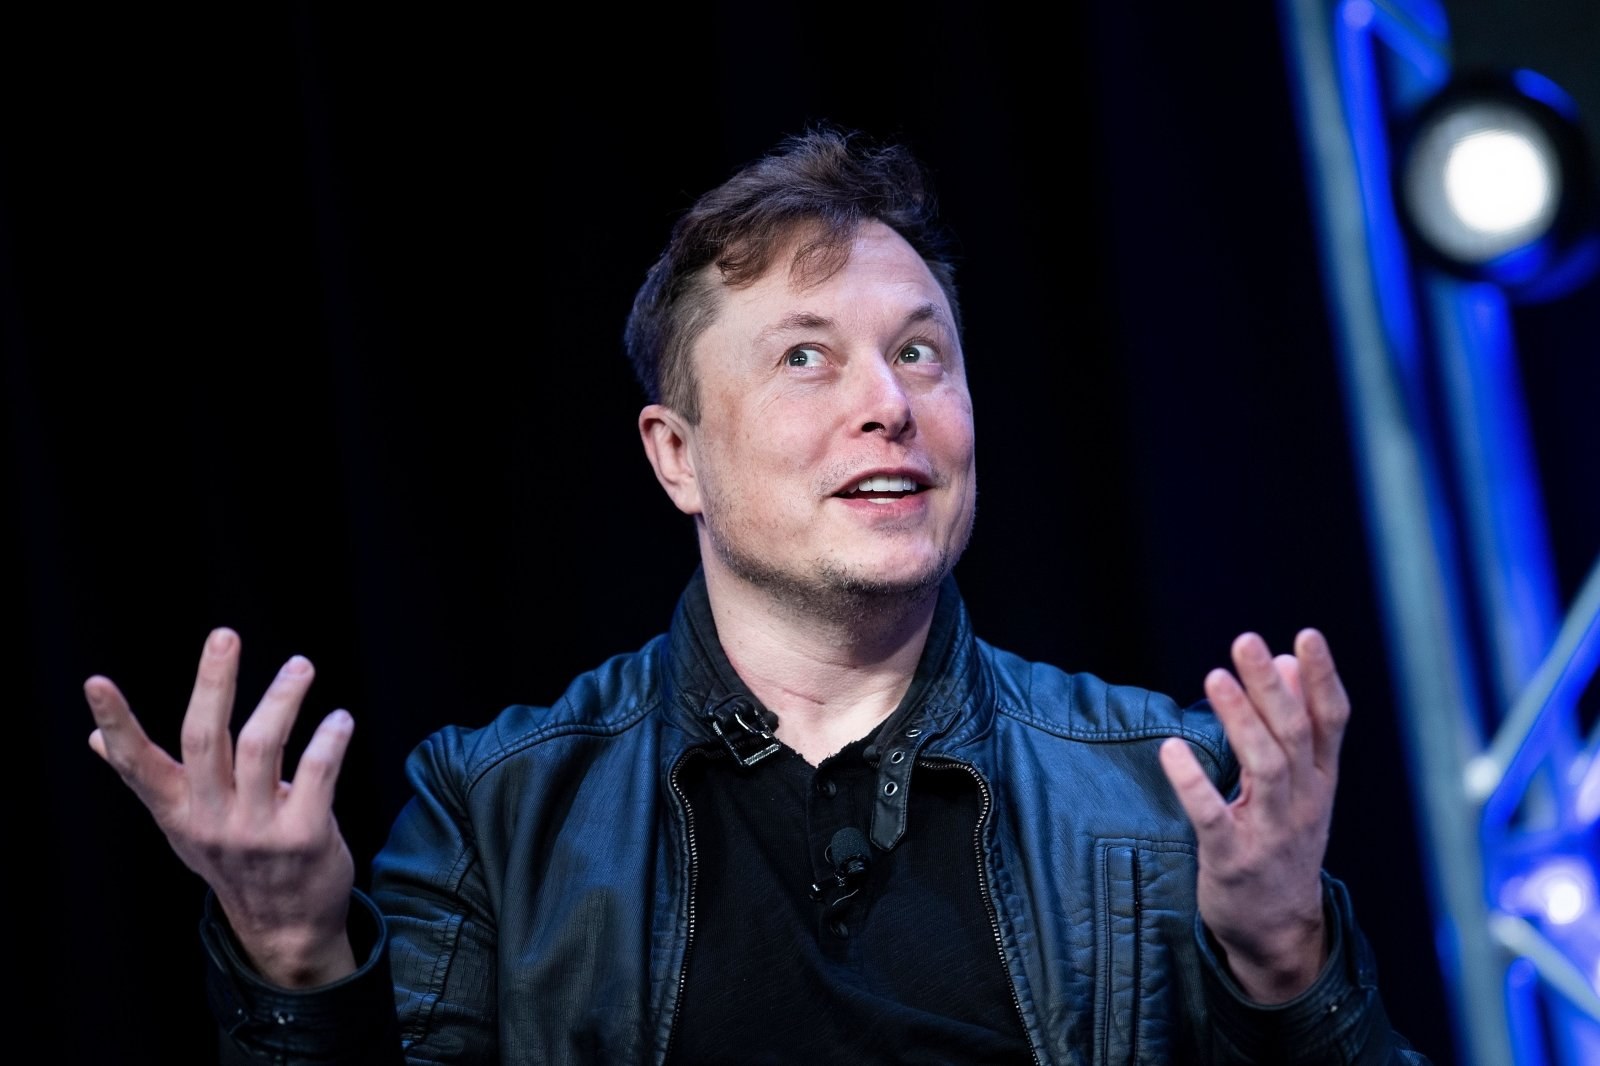 Elon Musk Becomes Second Richest Person In The World